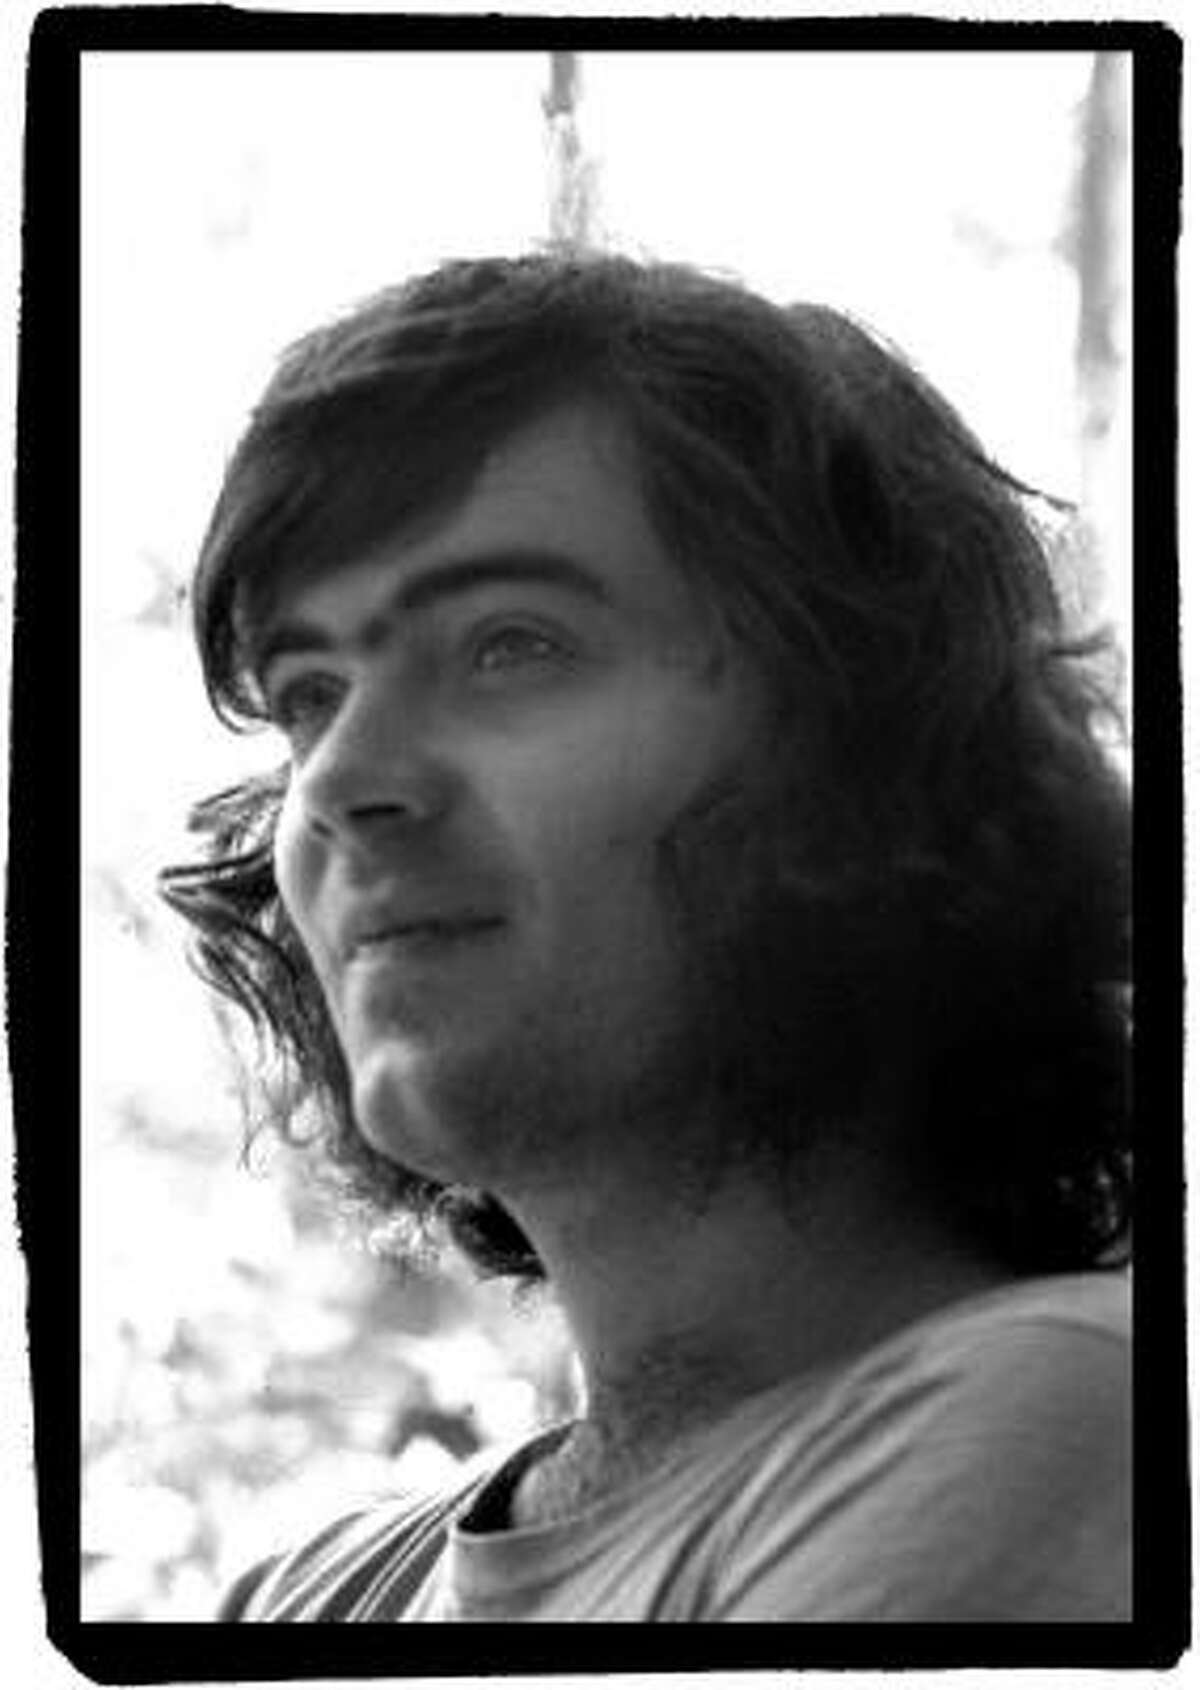 Roky Erickson's life as a young musician included drug use (both voluntary and involuntary), jail time and institutionalization.